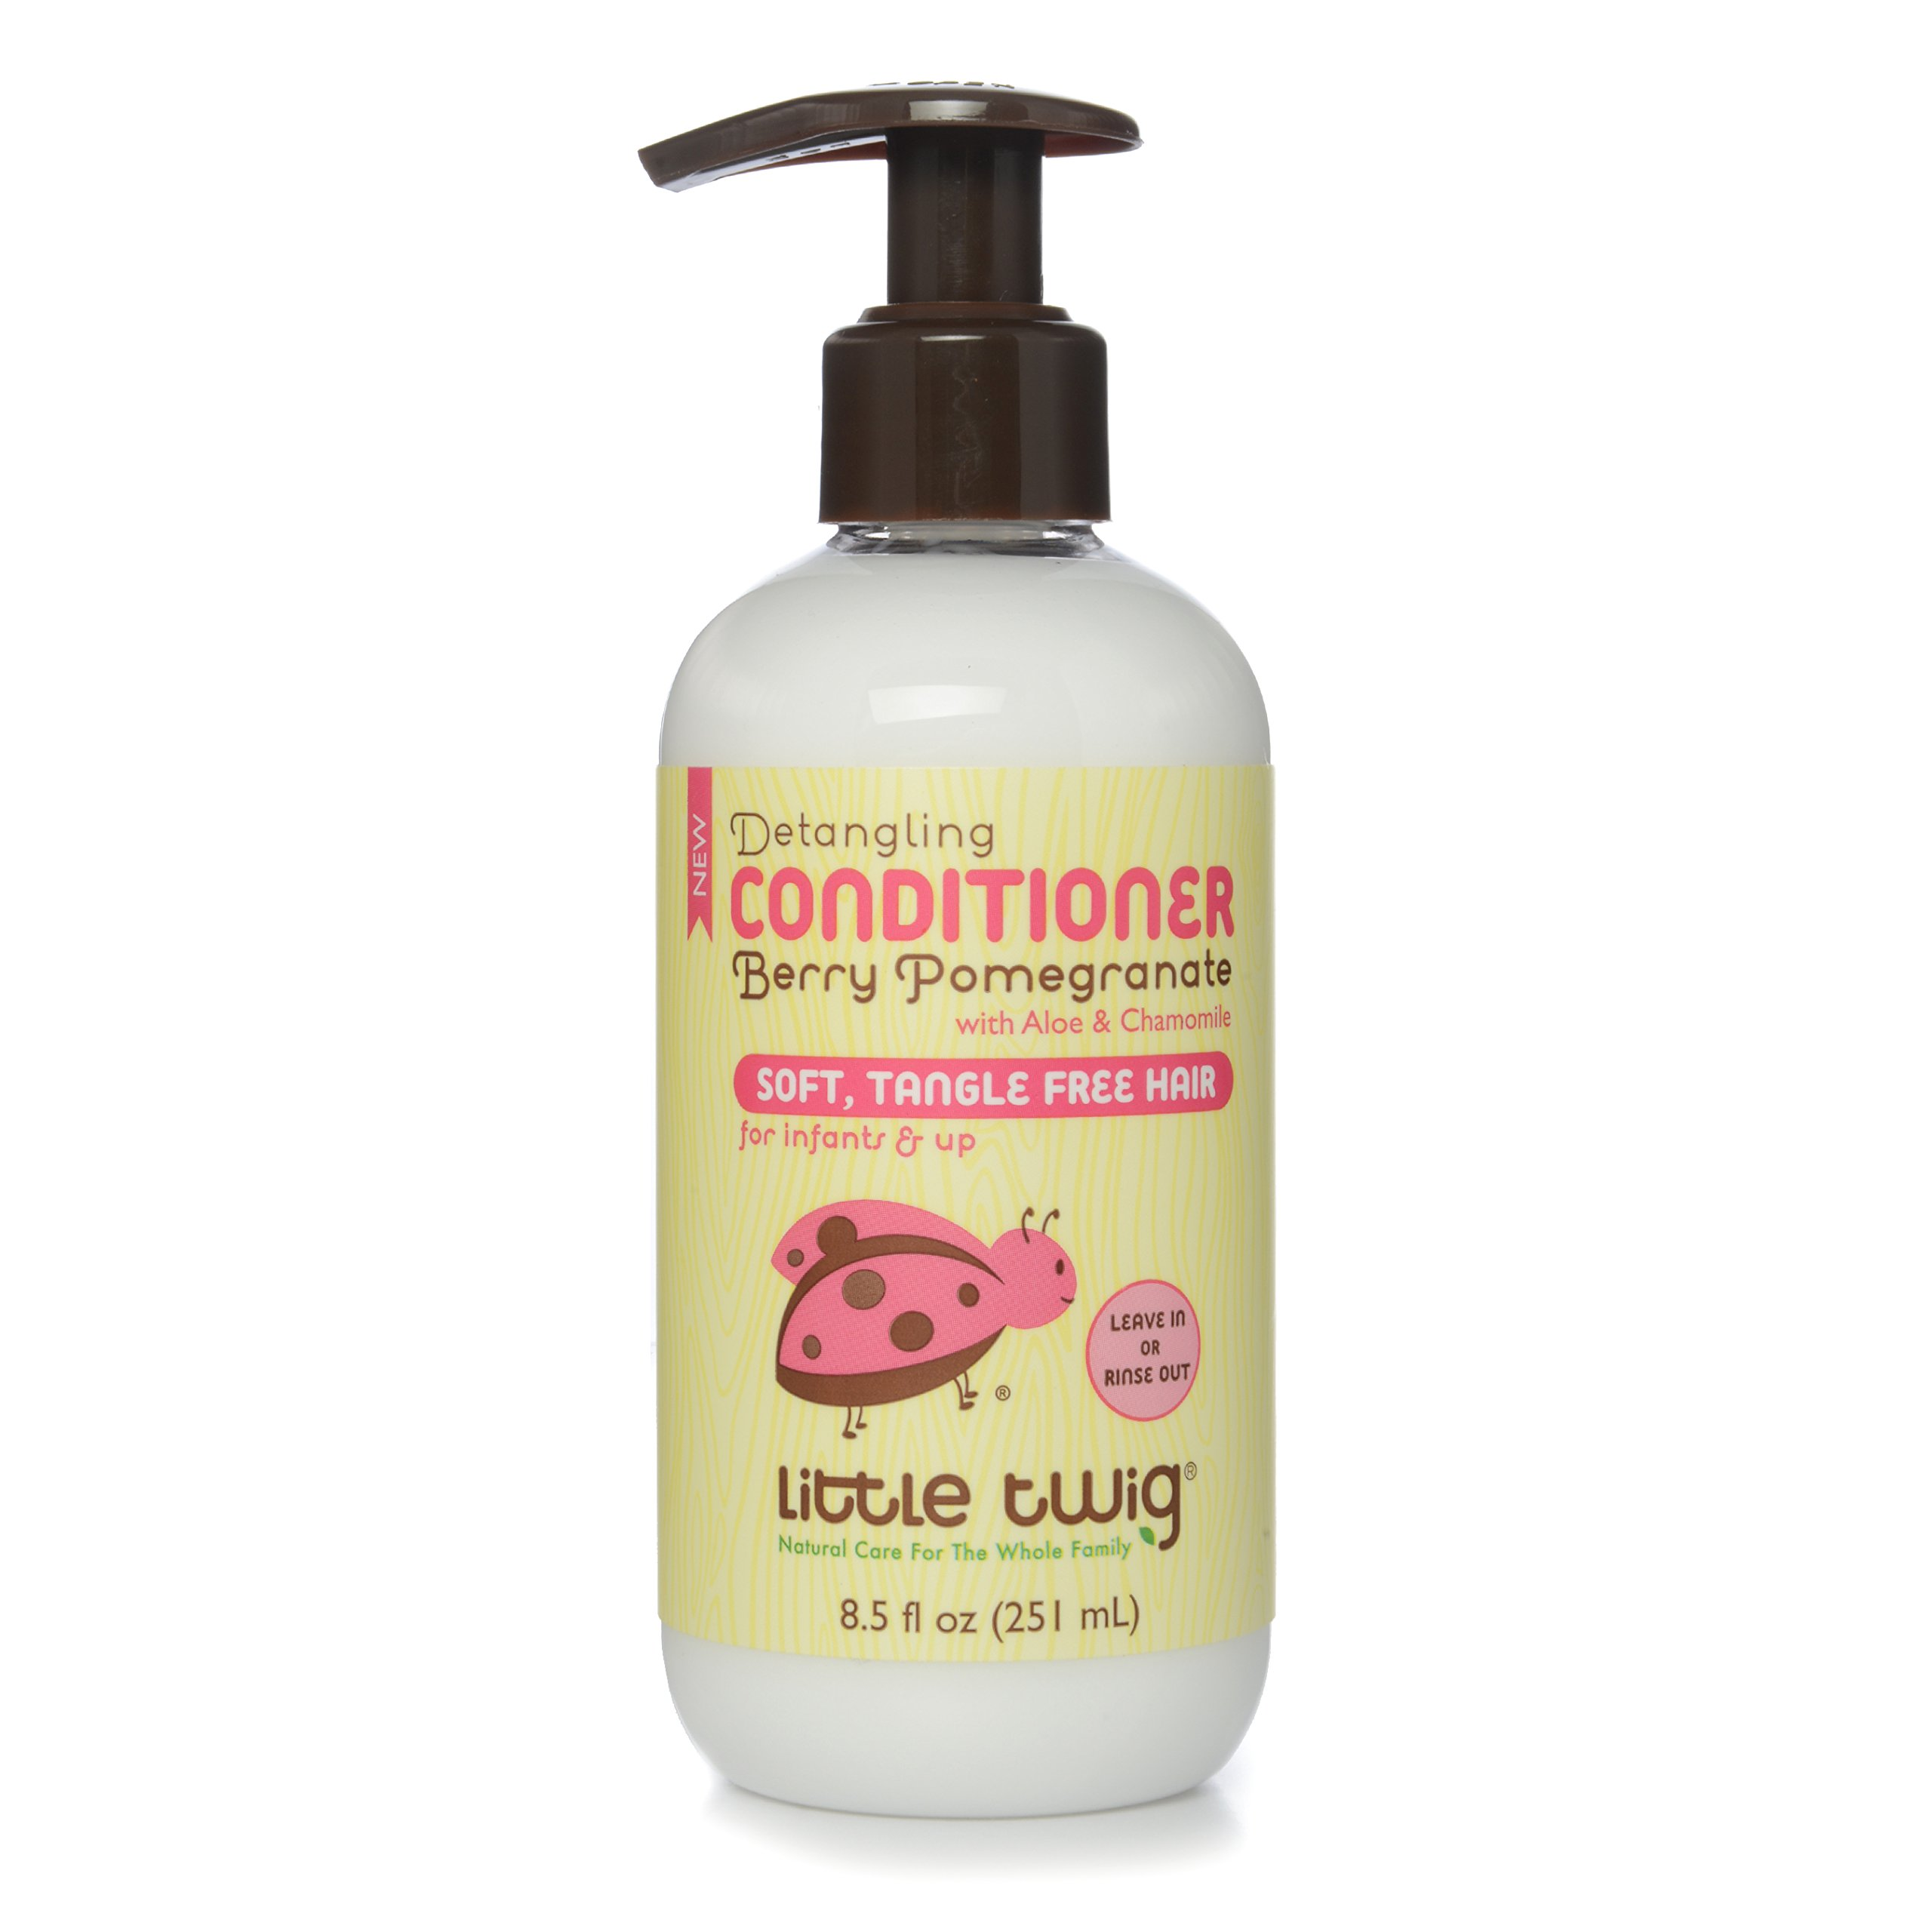 Little Twig All Natural Conditioning Detangler, Berry Pomegranate, 8.5 Fluid Oz